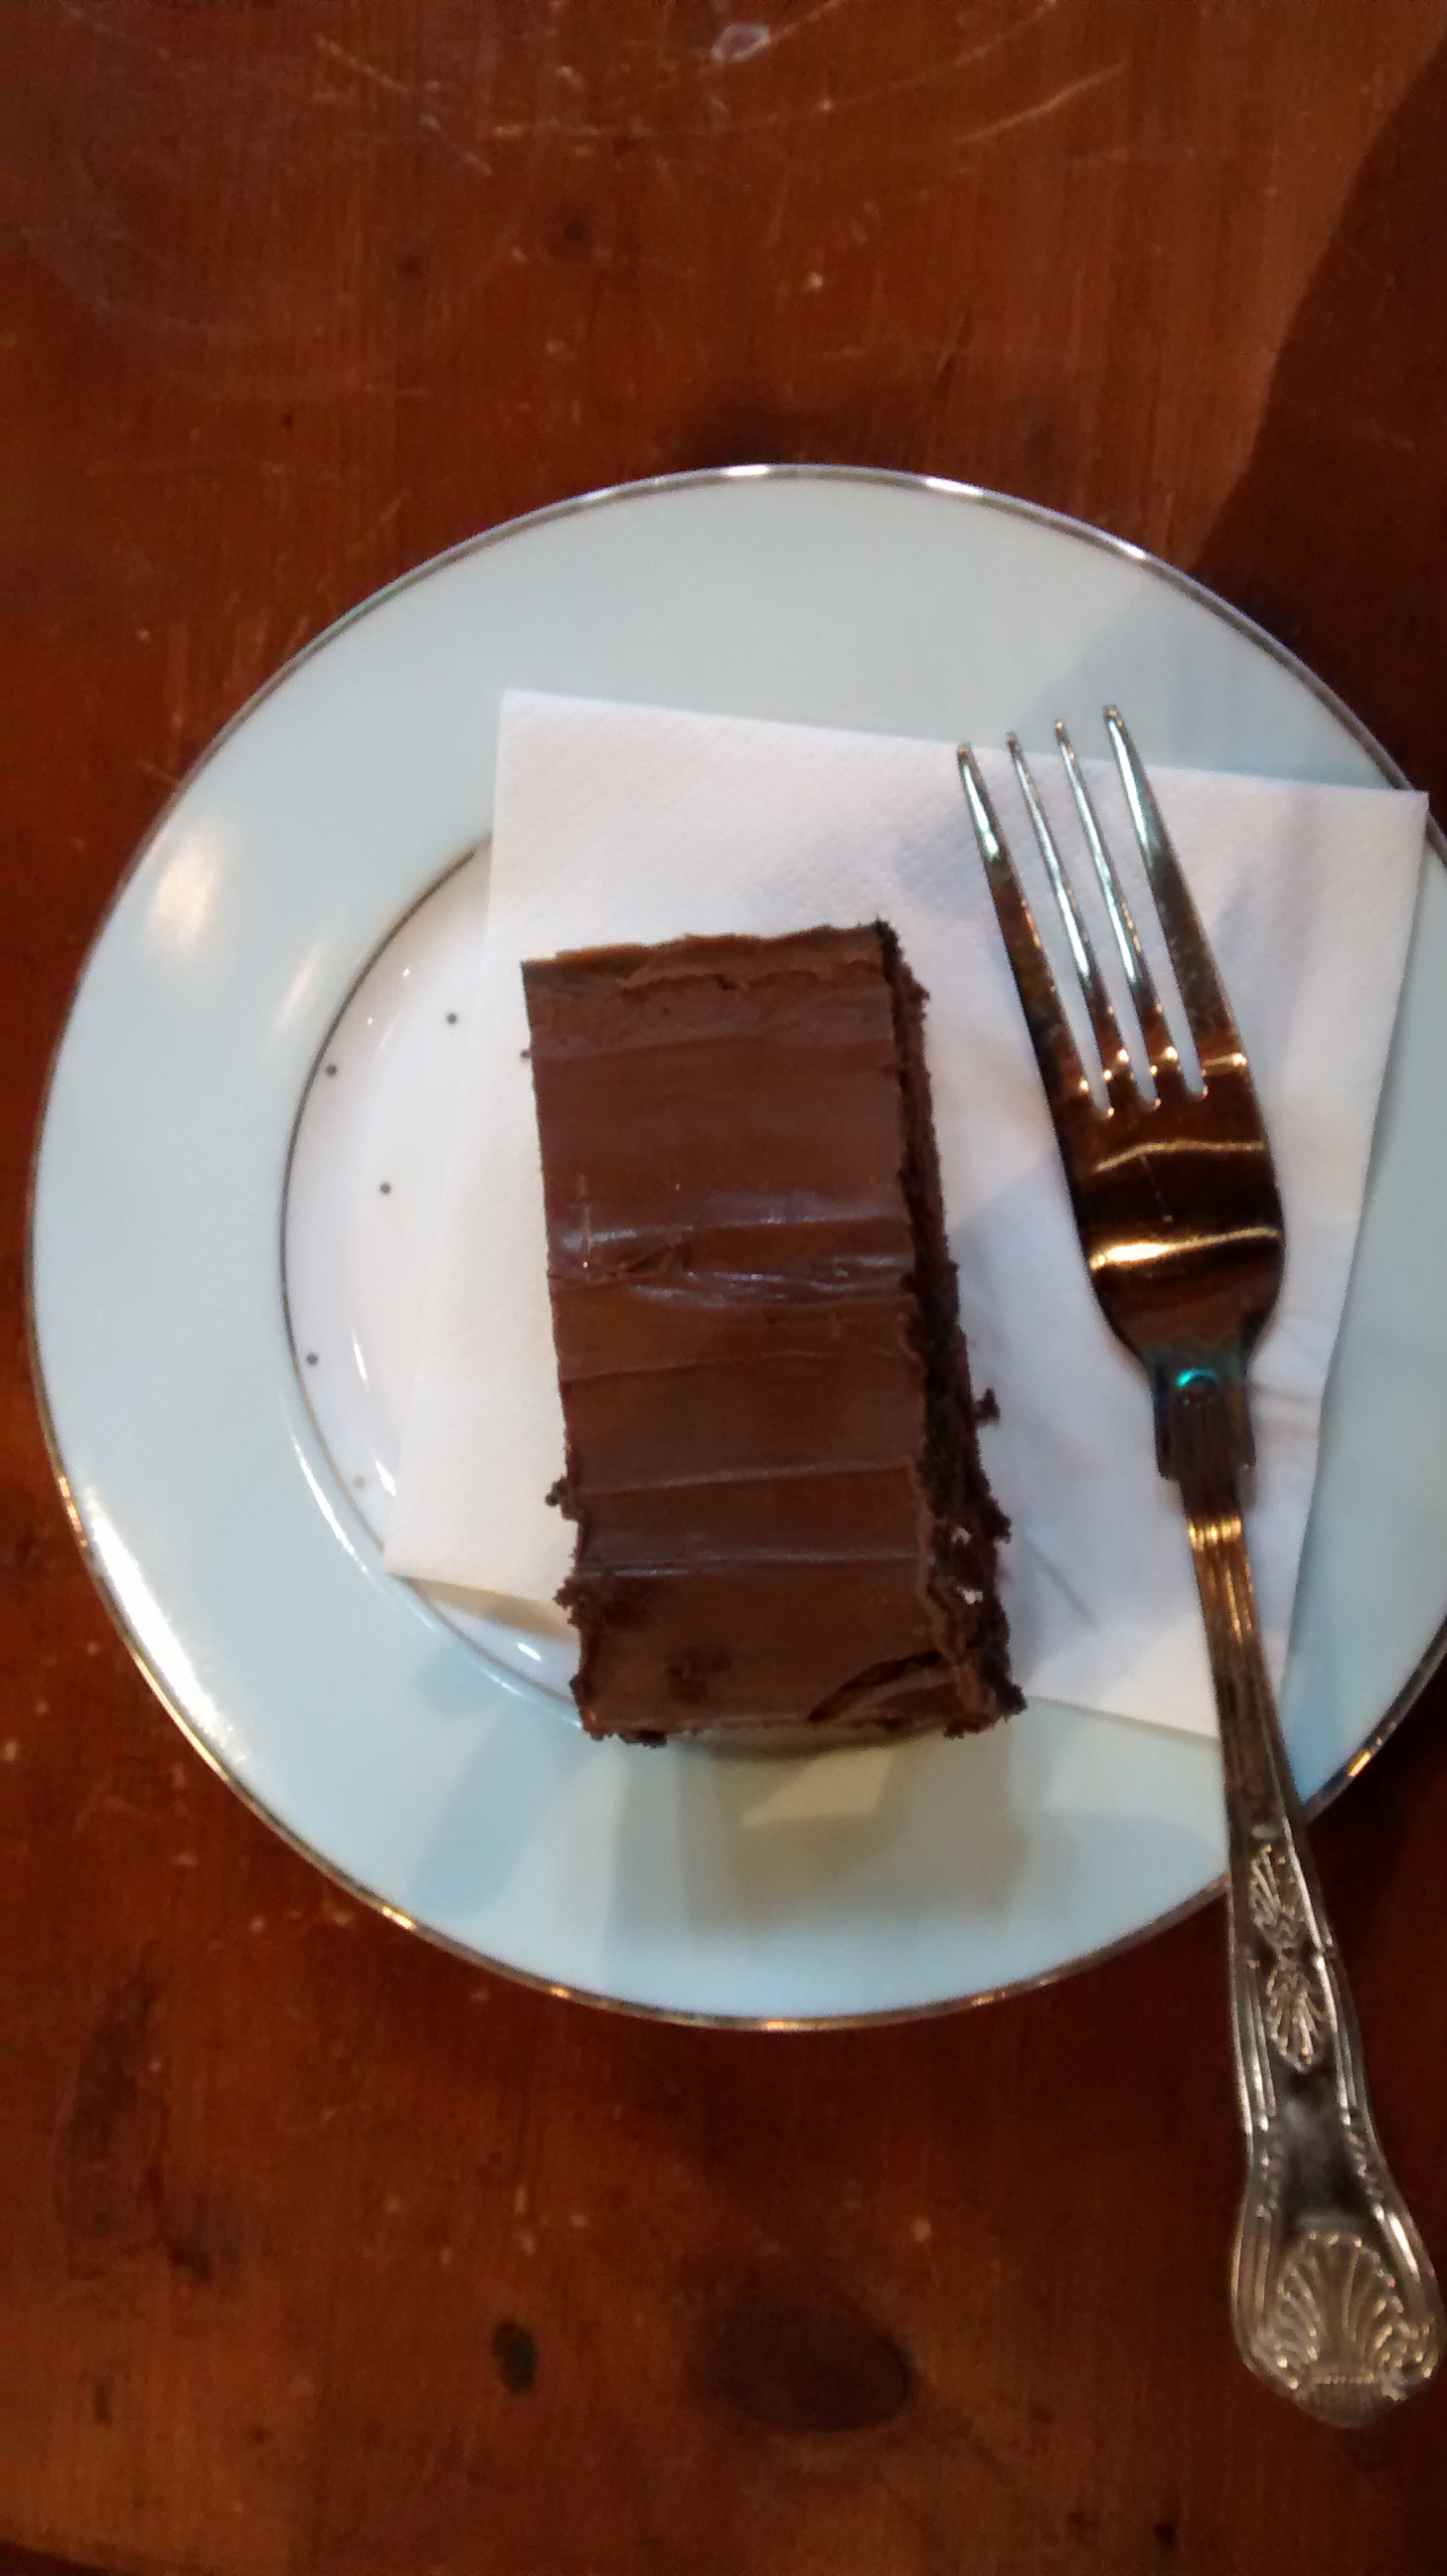 Food For Thought - Sanctuary Café: Bringing The Community Together, West Hampstead, London